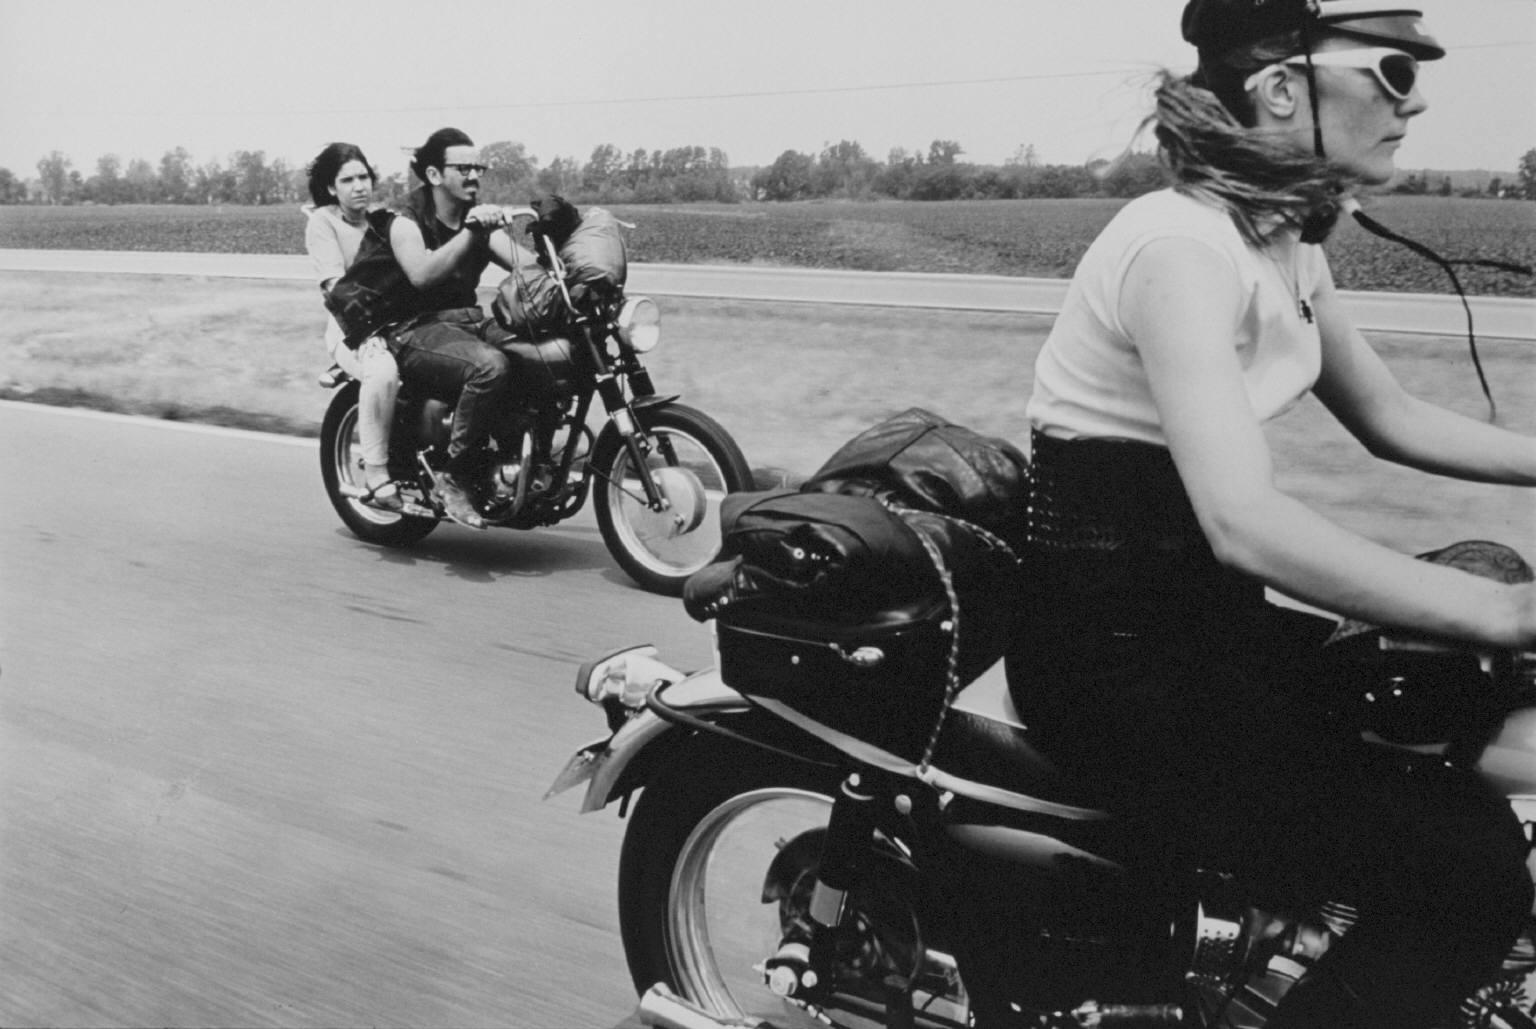 gear box of motorcycle danny lyon    the bikeriders        american suburb x  danny lyon    the bikeriders        american suburb x